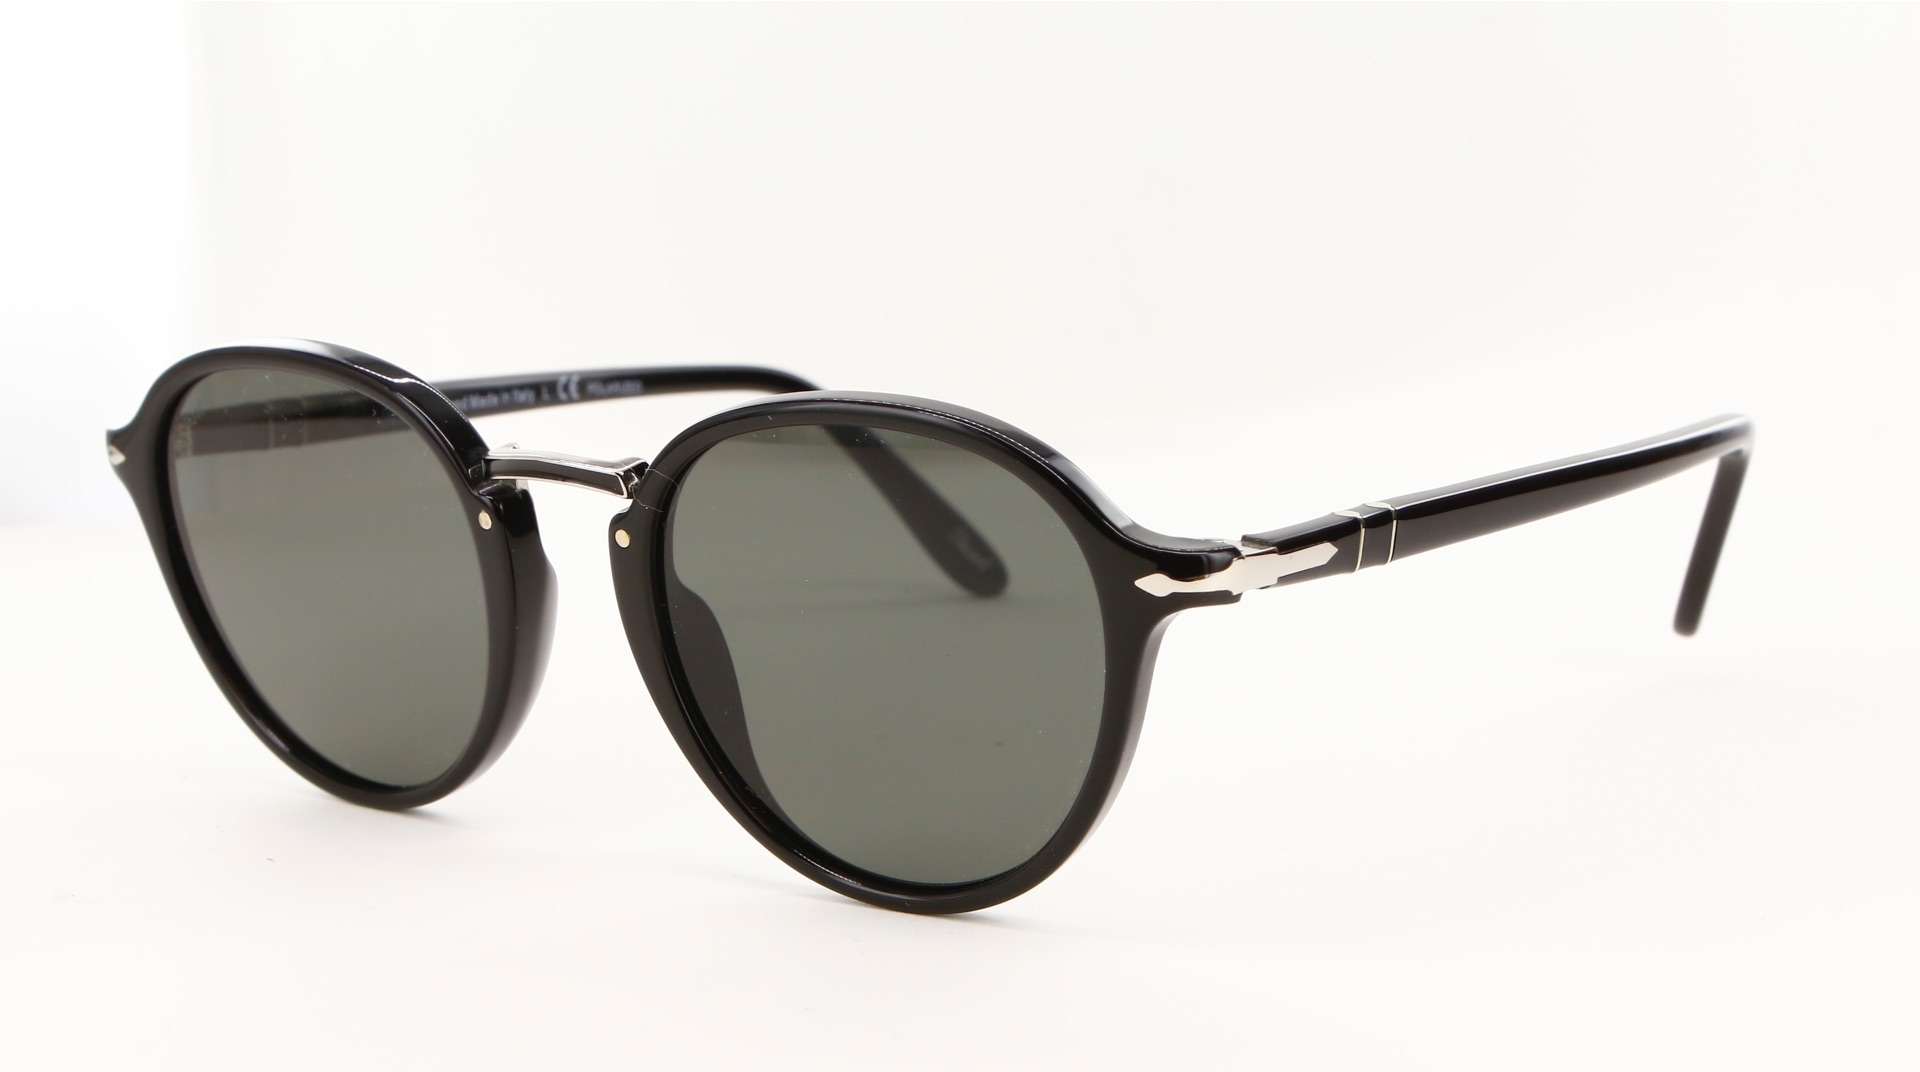 Persol - ref: 80848